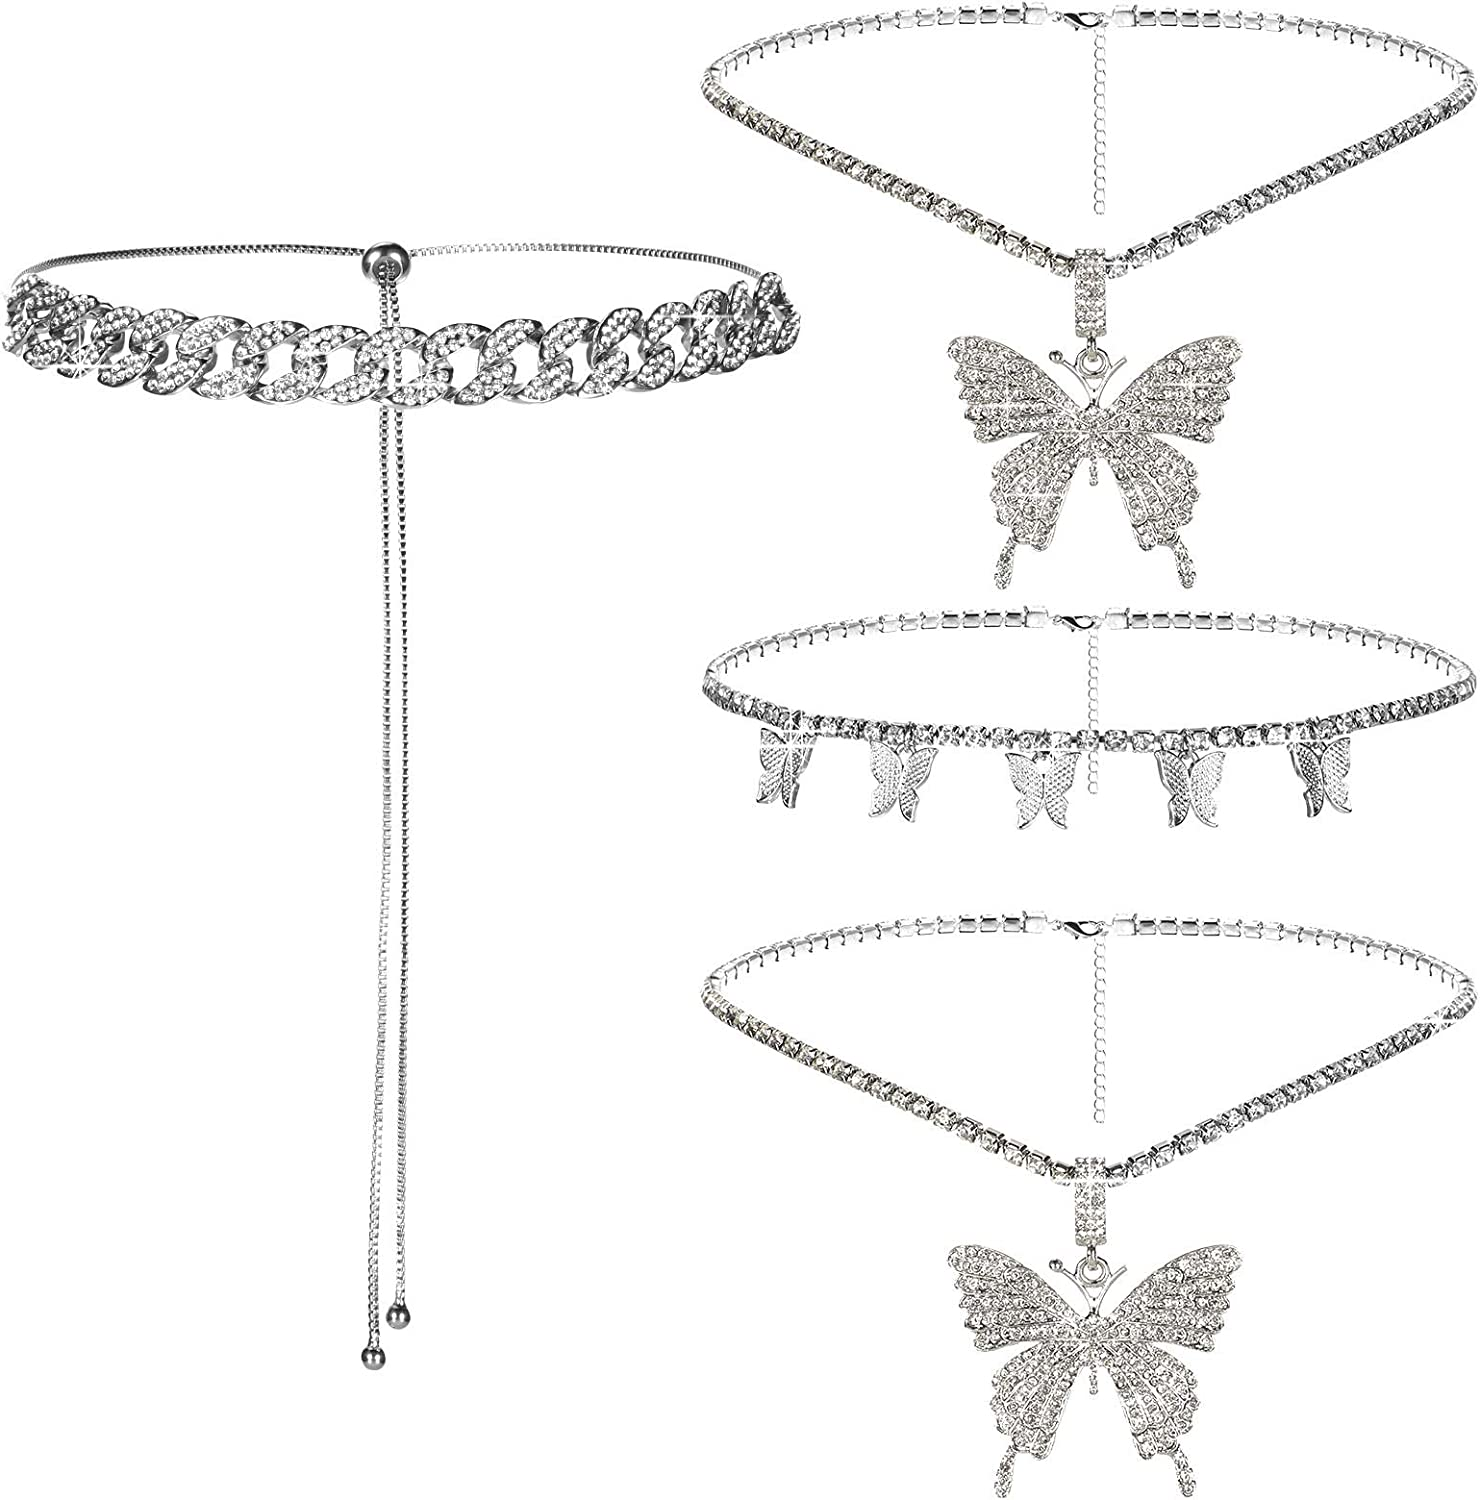 3 Pieces Butterfly Choker Necklace Butterfly Pendant Rhinestone Chain Layered Crystal Pendant Necklaces Butterfly Chain Jewelry for Women, 6 Matching Methods